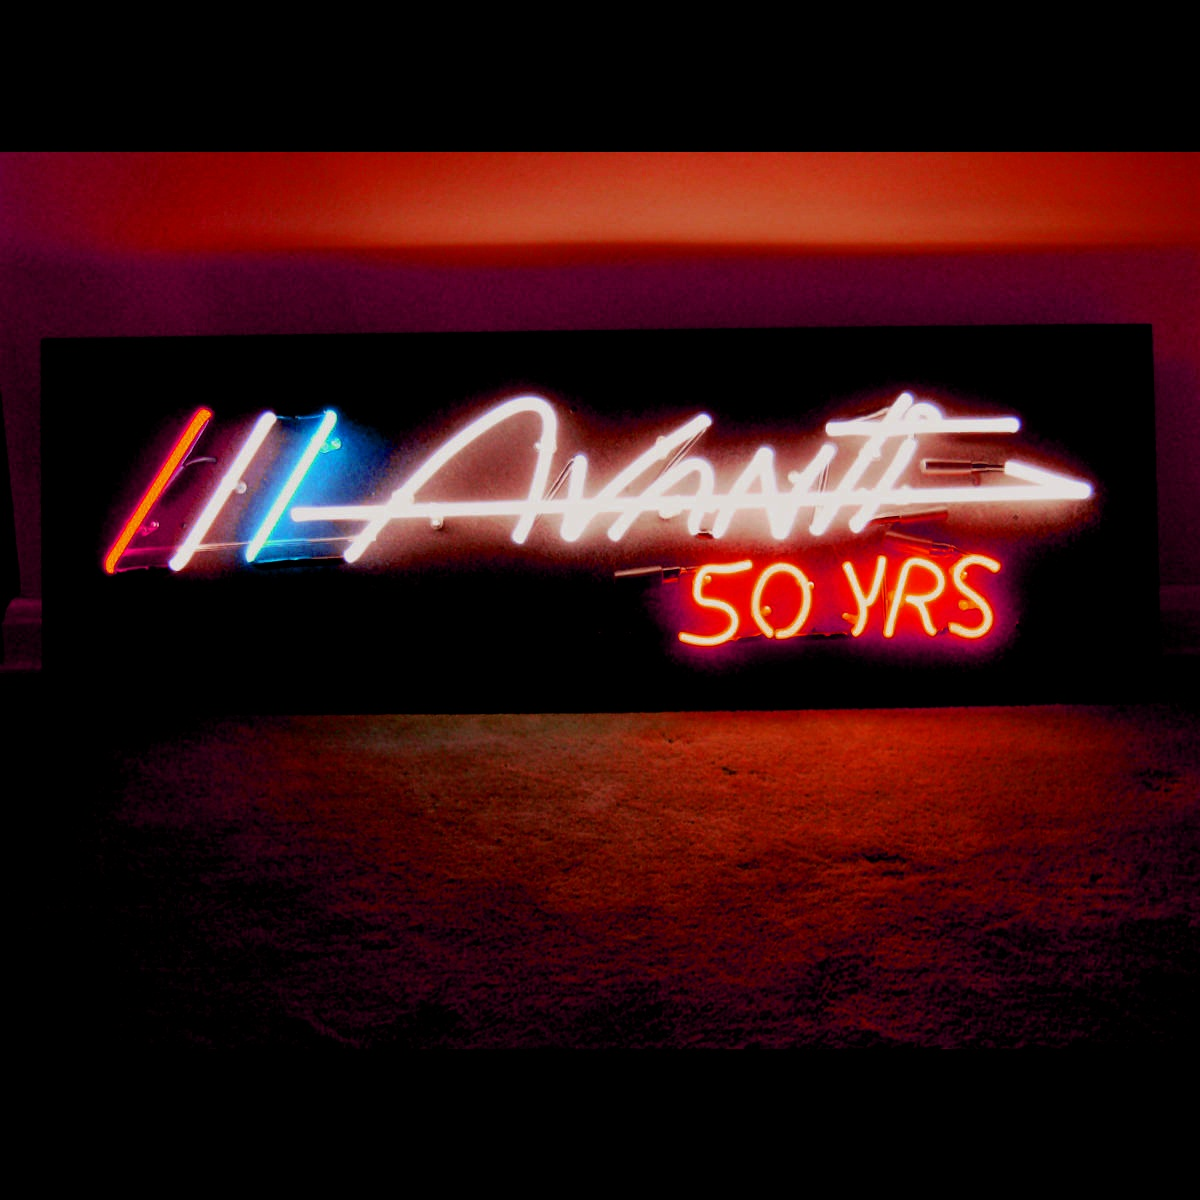 Avanti Dealership Neon Sign.jpg